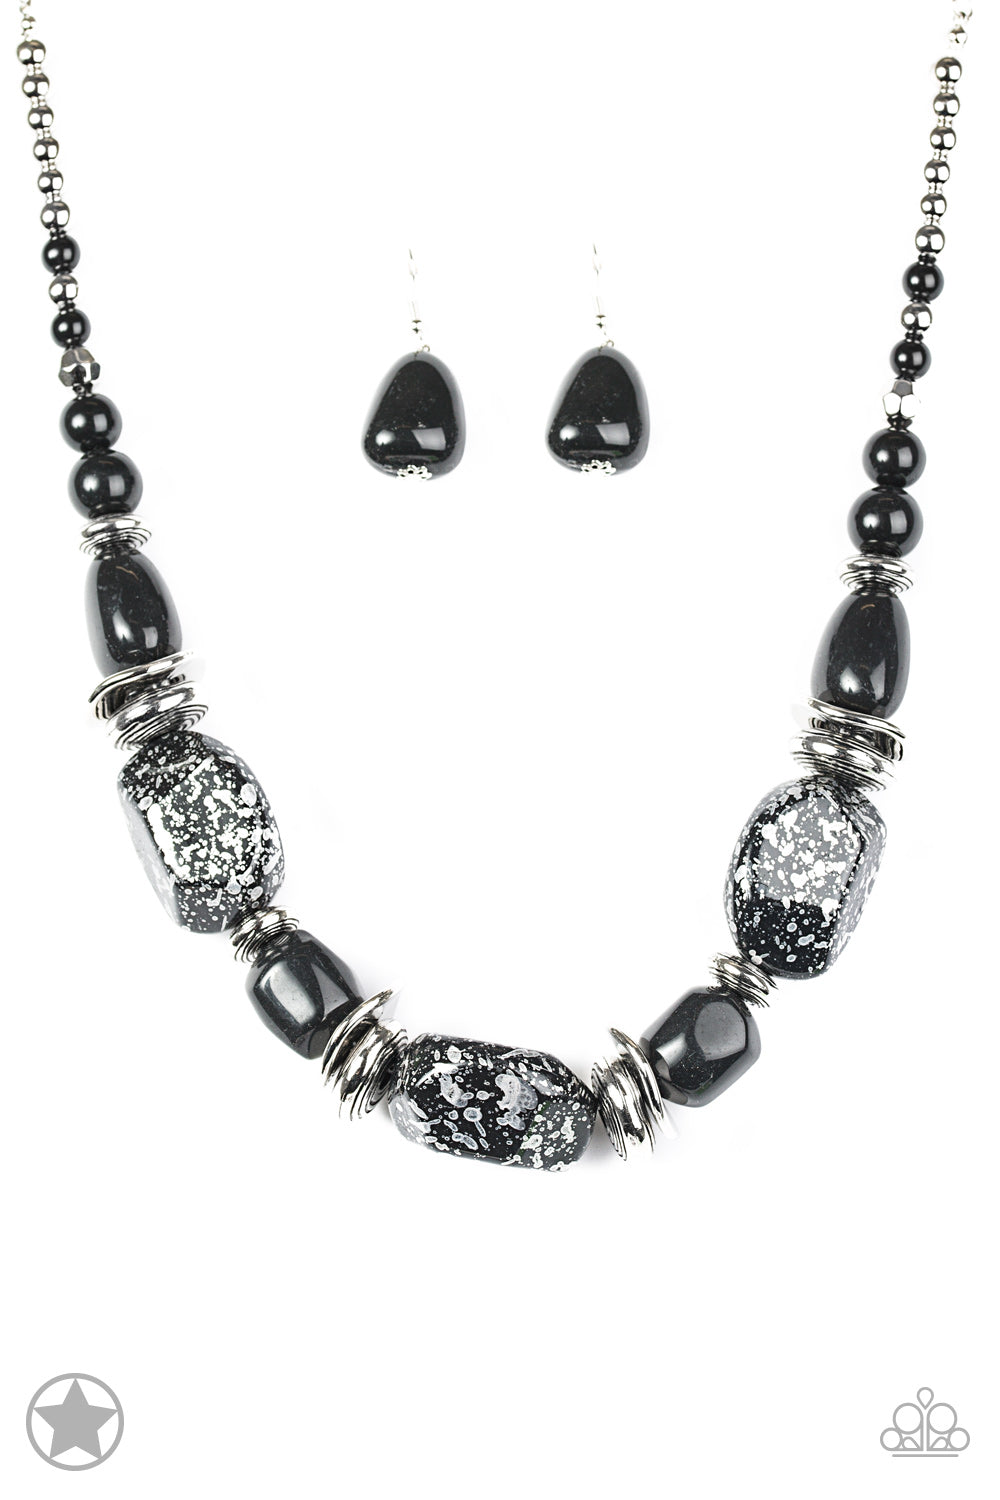 Paparazzi Accessories - In Good Glazes - Black Necklace Set - JMJ Jewelry Collection